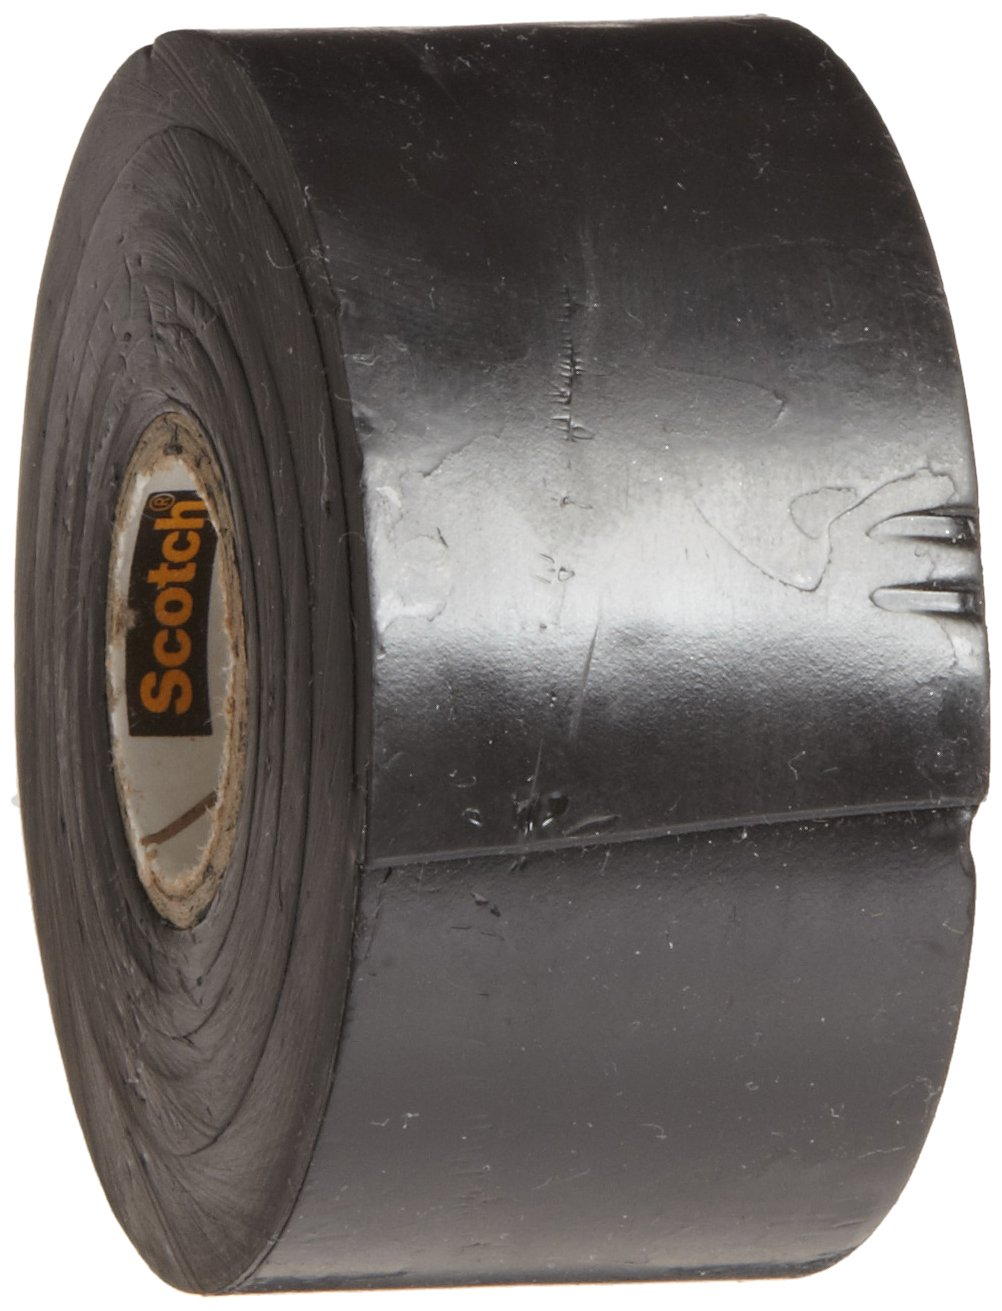 3M(TM) Linerless Electrical Rubber Tape 2242, 1 1/2 in x 15 ft (38 mm x 4,6m)